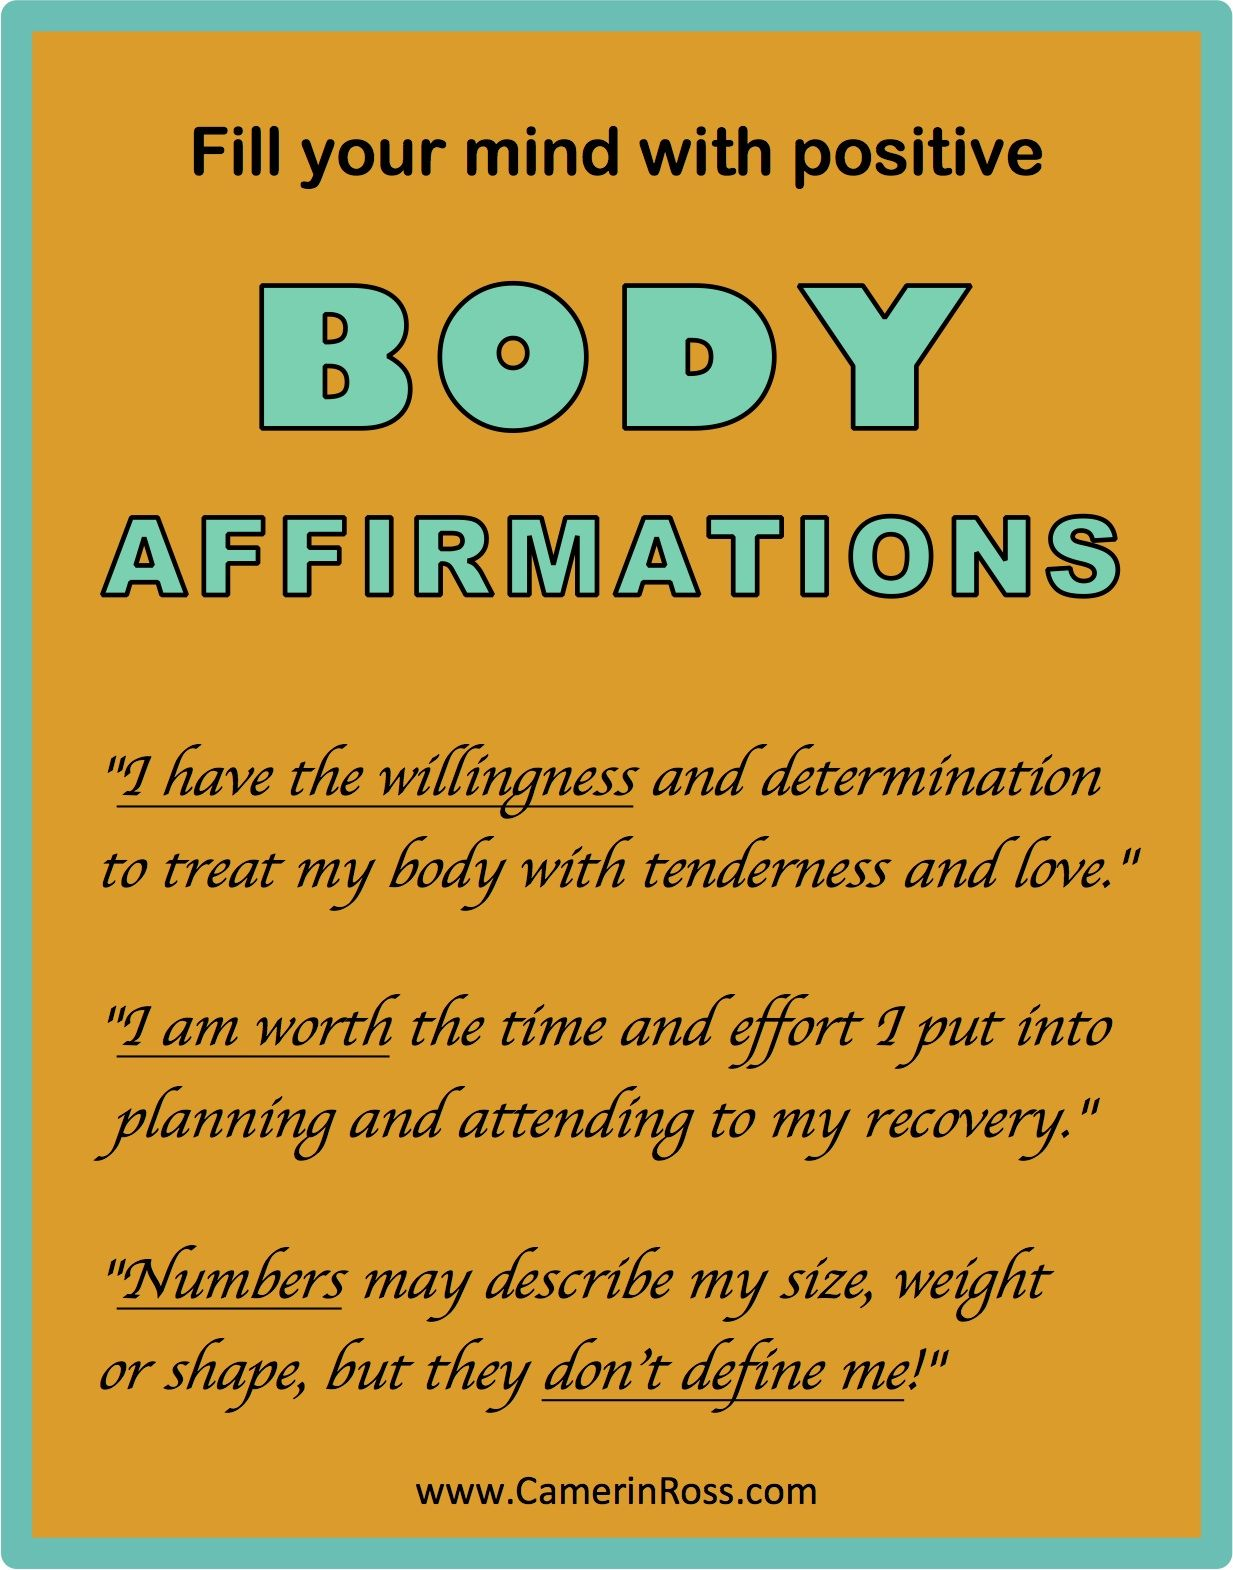 Fill Your Mind With Positive Body Affirmations